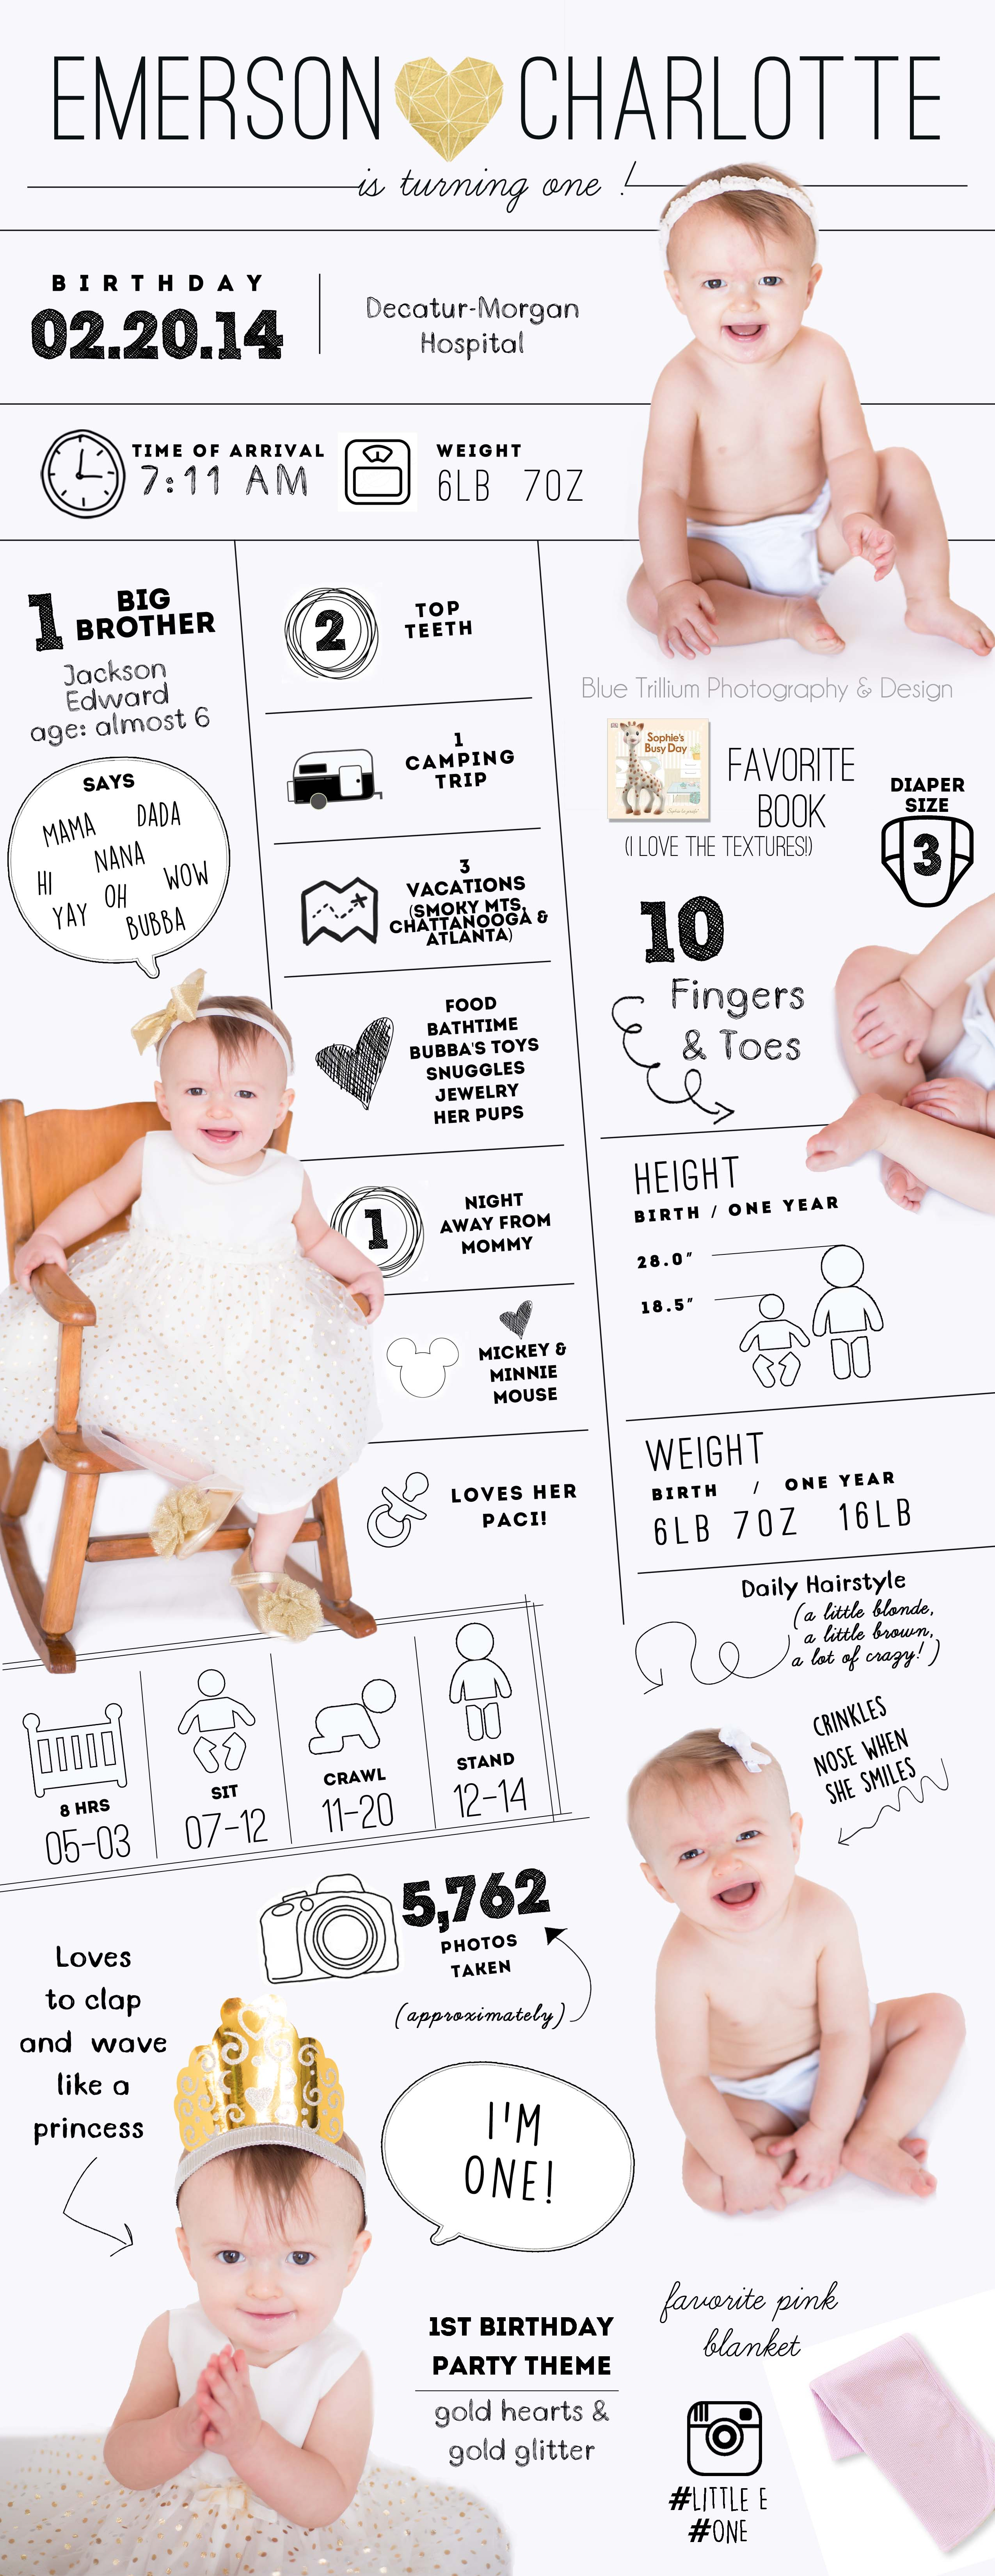 emerson charlotte is one an infographic to celebrate the day blue trillium photography. Black Bedroom Furniture Sets. Home Design Ideas